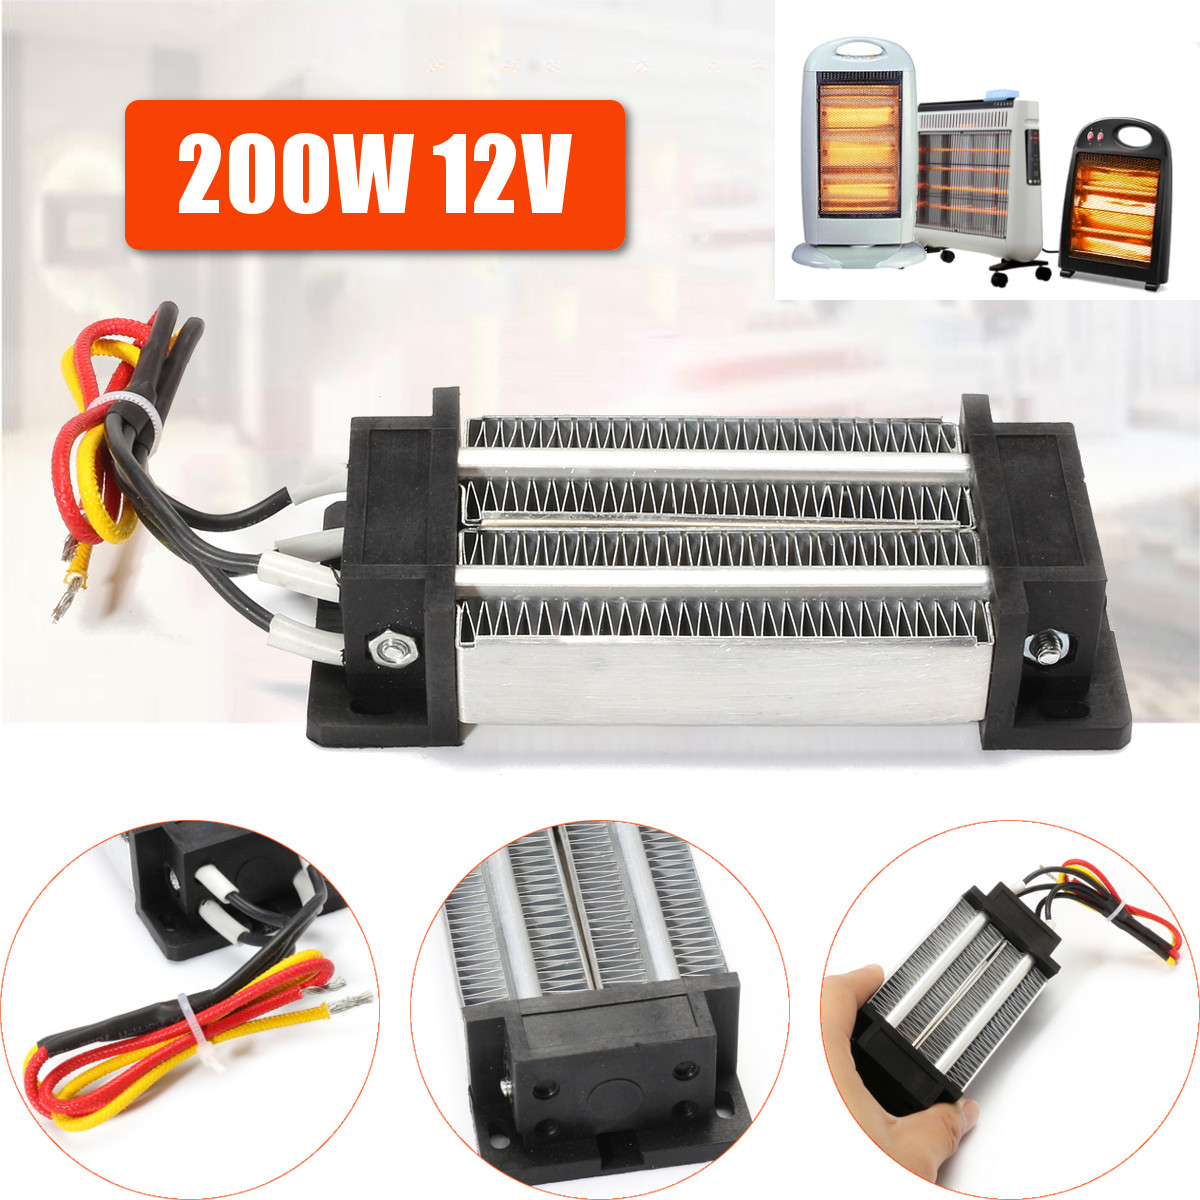 Heater for Incubator 12V 200W Electric Thermostatic PTC Heating Element Insulation Heater